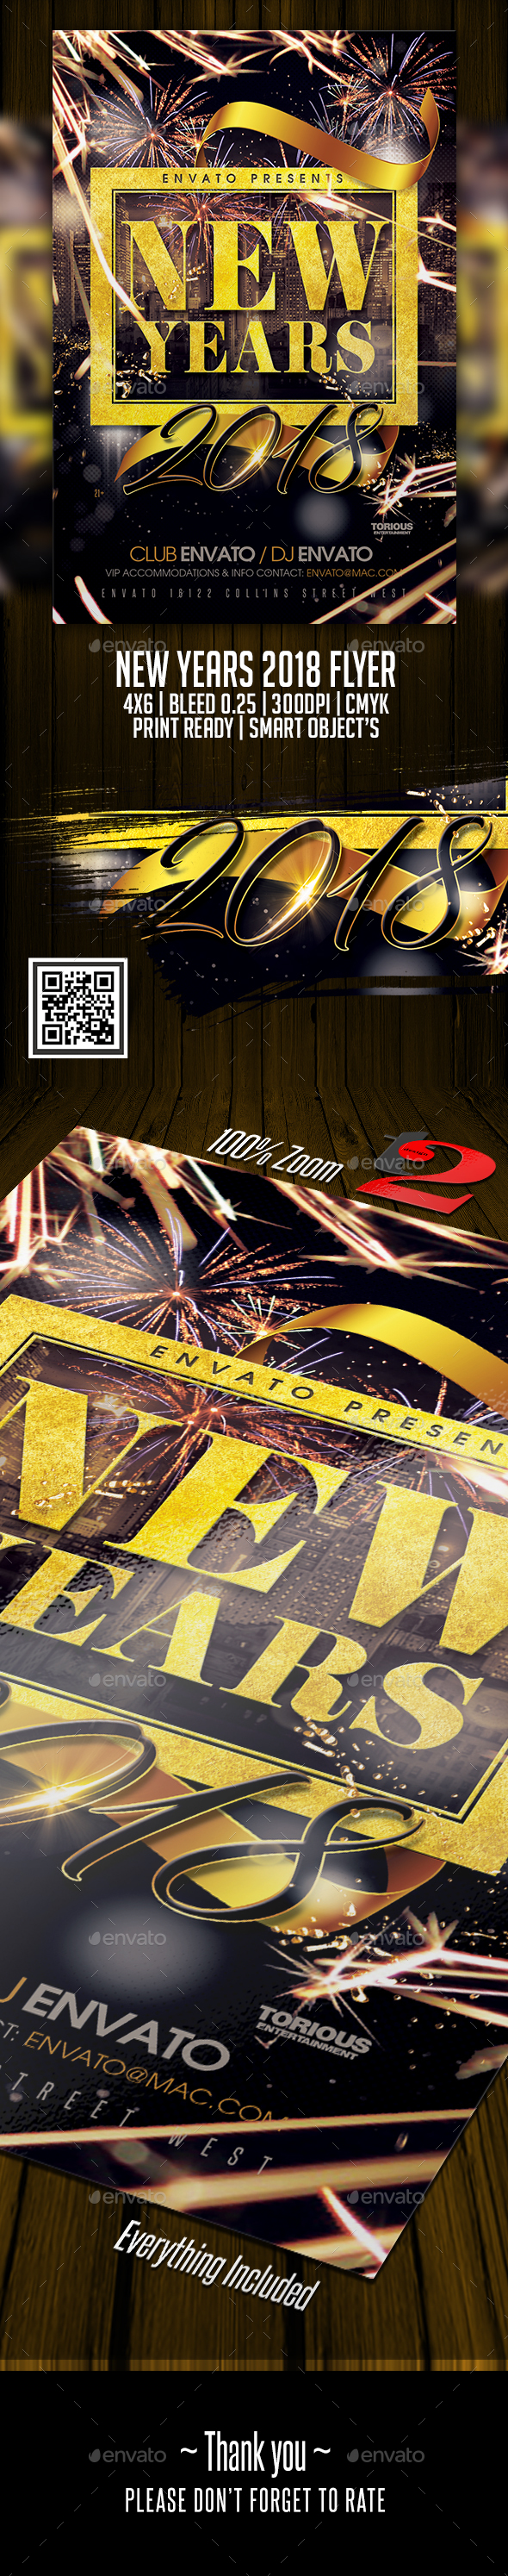 New Years 2018 Flyer Template - Clubs & Parties Events